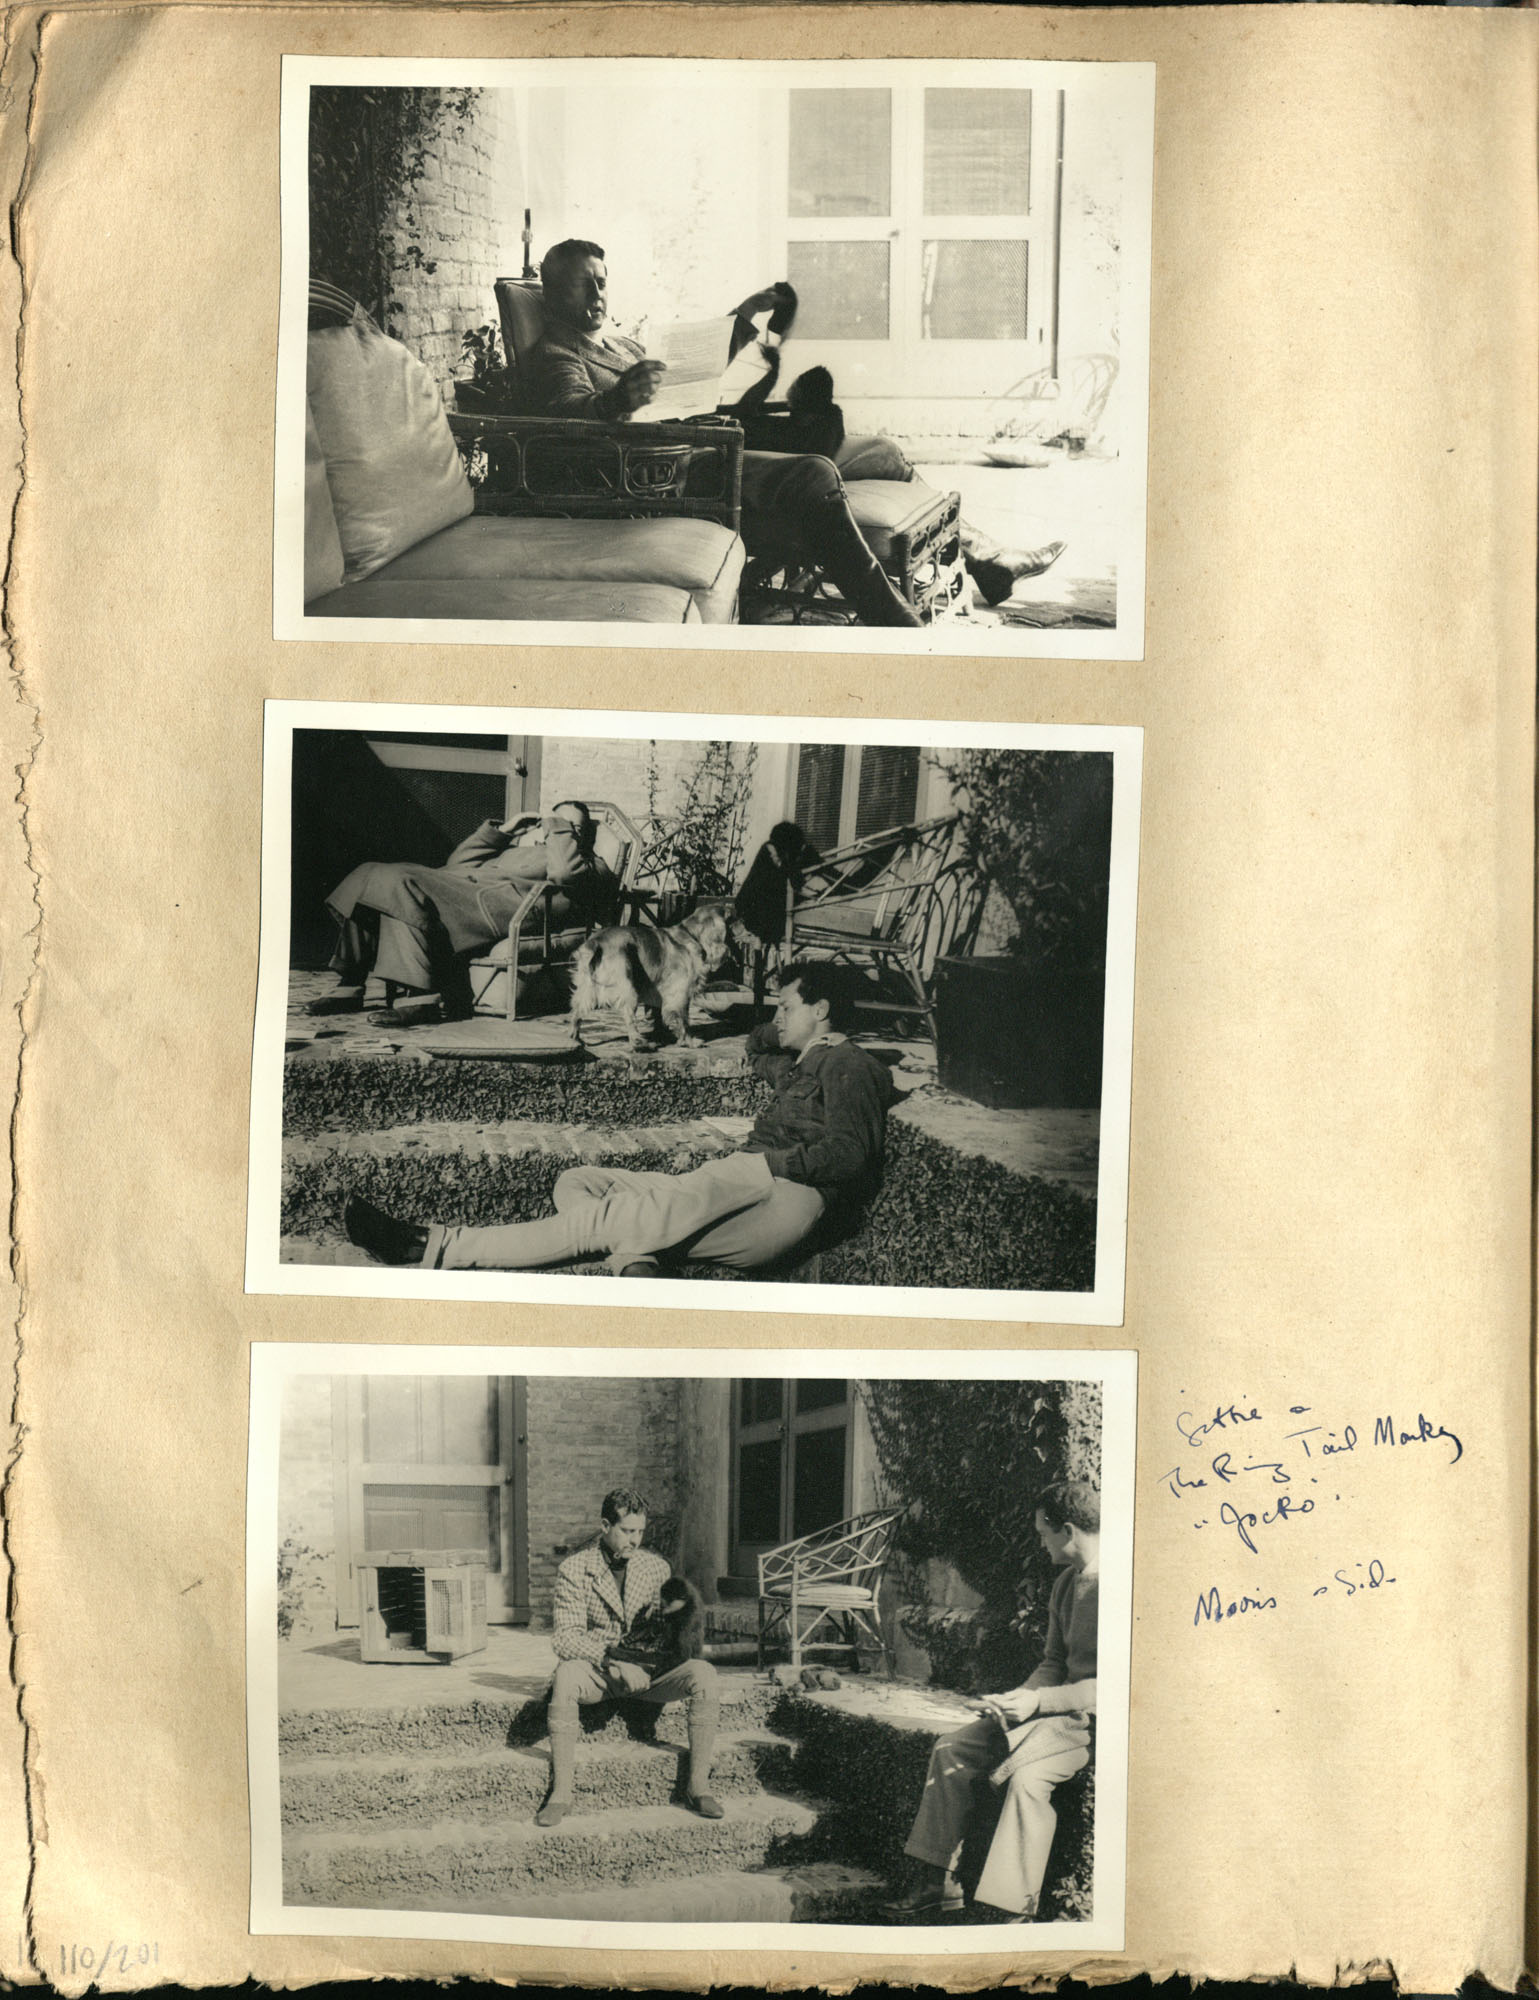 Early Medway and travels album, 1929-1937, page 110